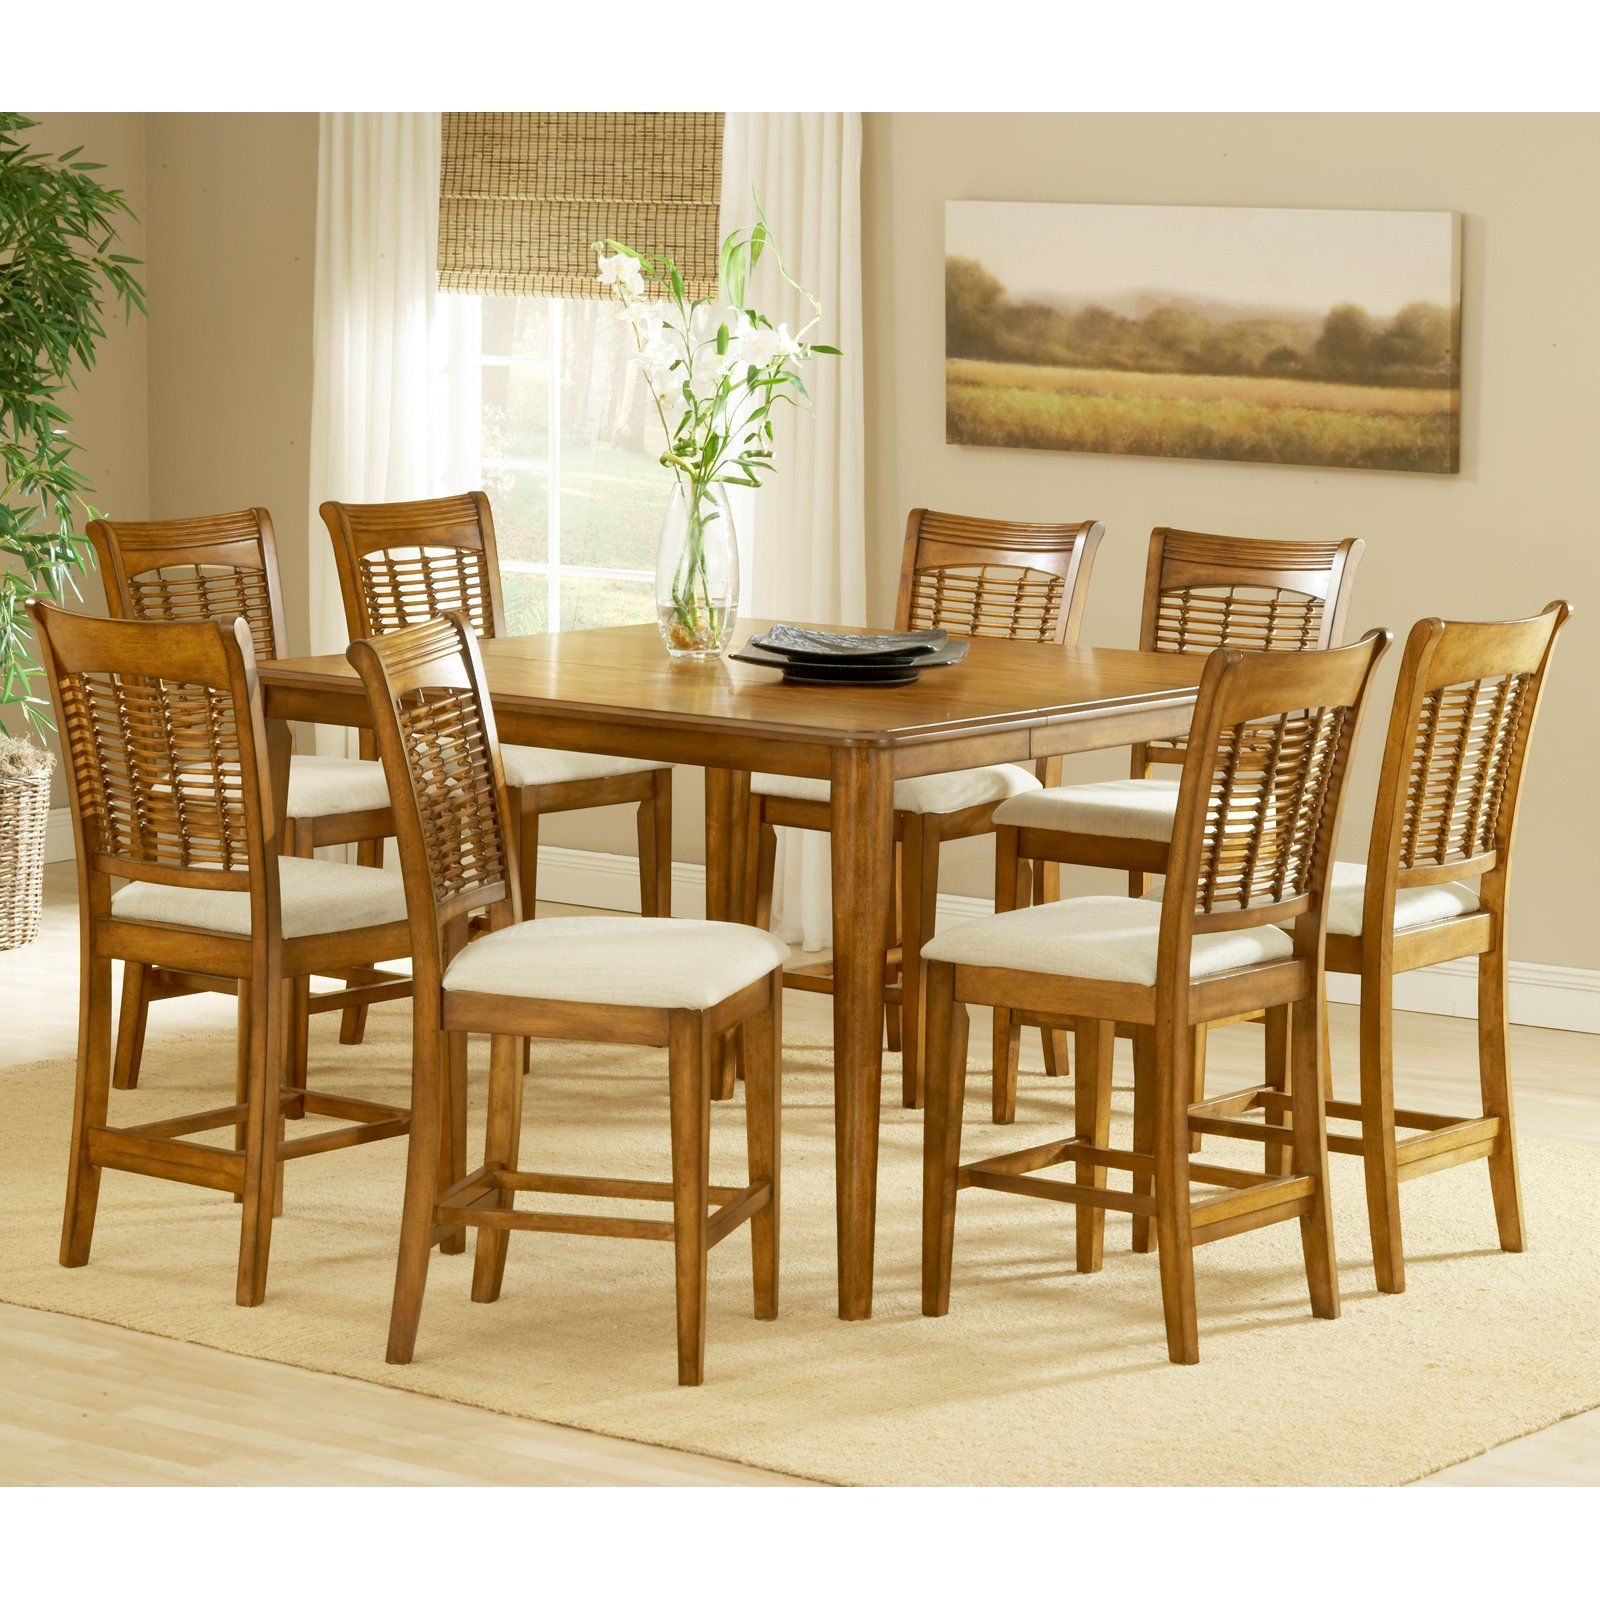 Dining Room Square Dining Table For 8 Size And With Leaf And